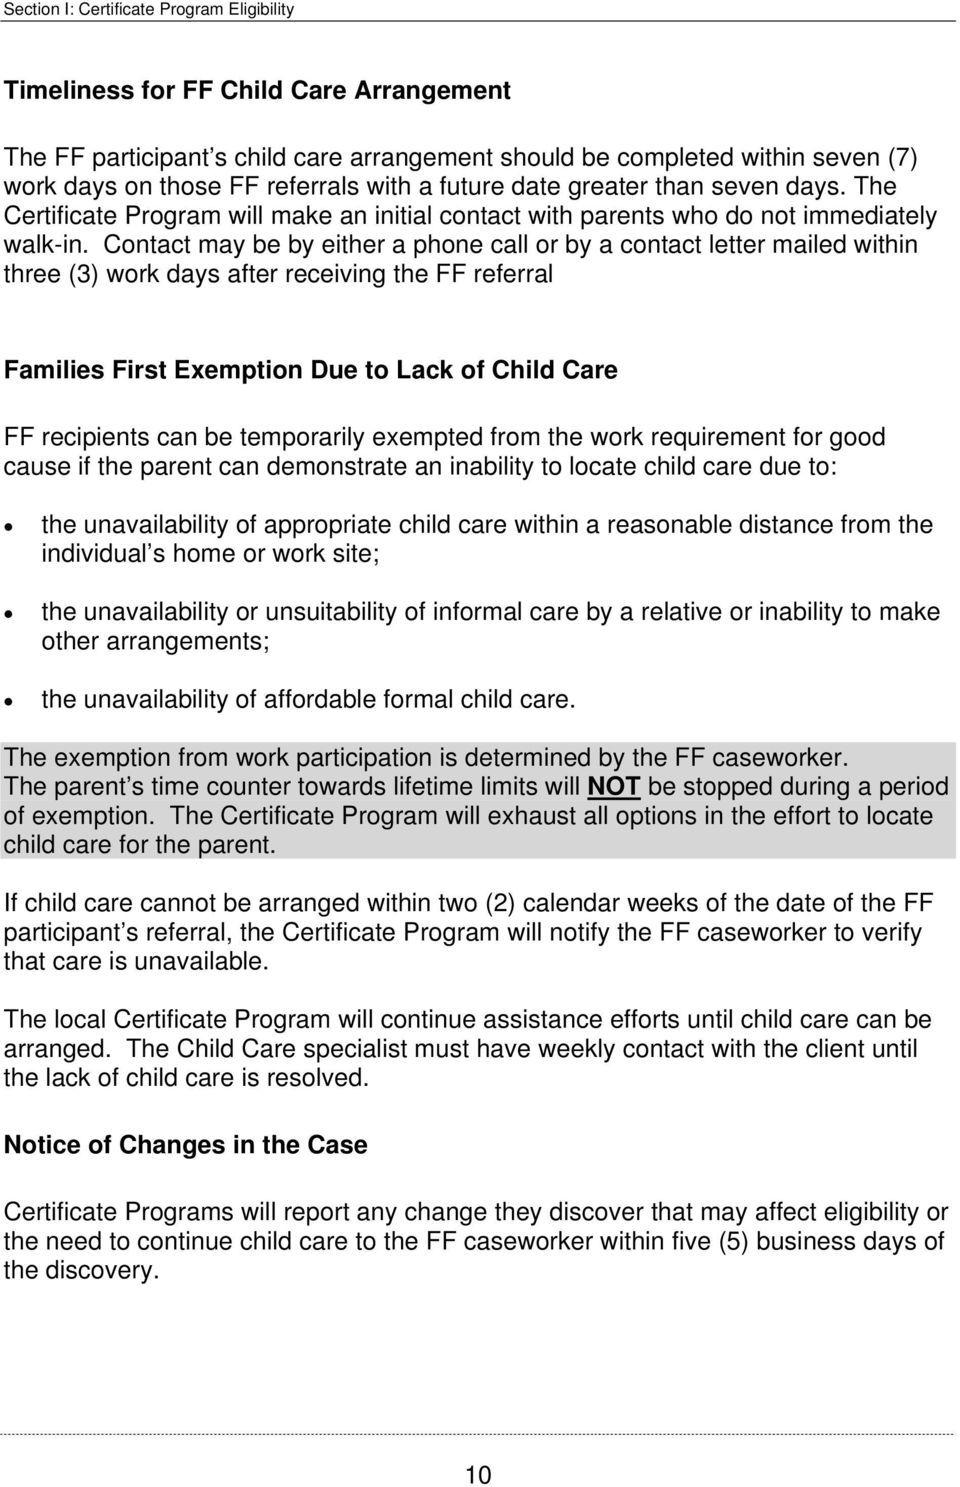 state of tennessee department of human services child care contact be by either a phone call or by a contact letter mailed in three